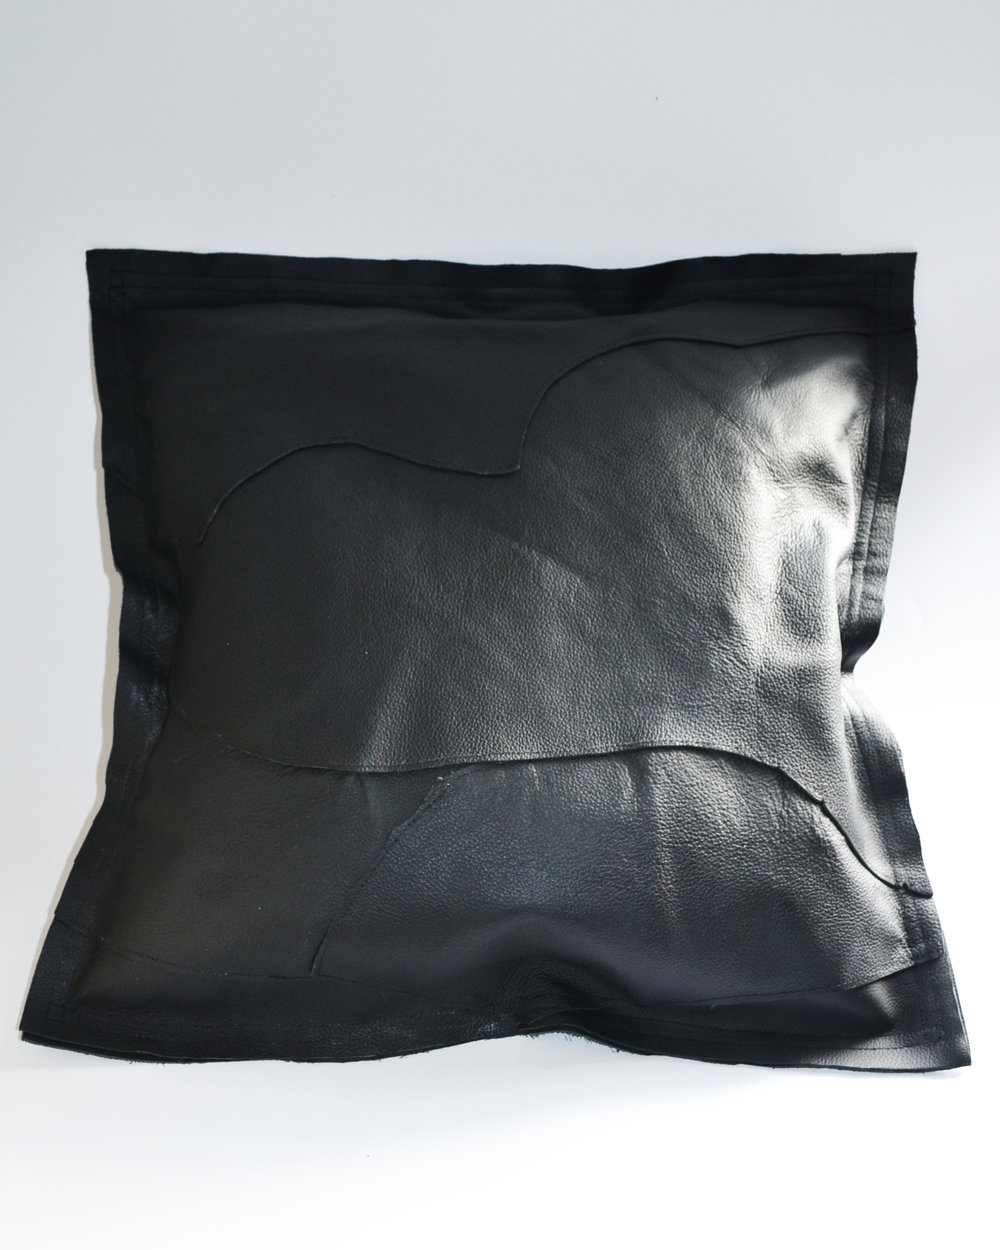 sustainable_leather_cushion.jpg